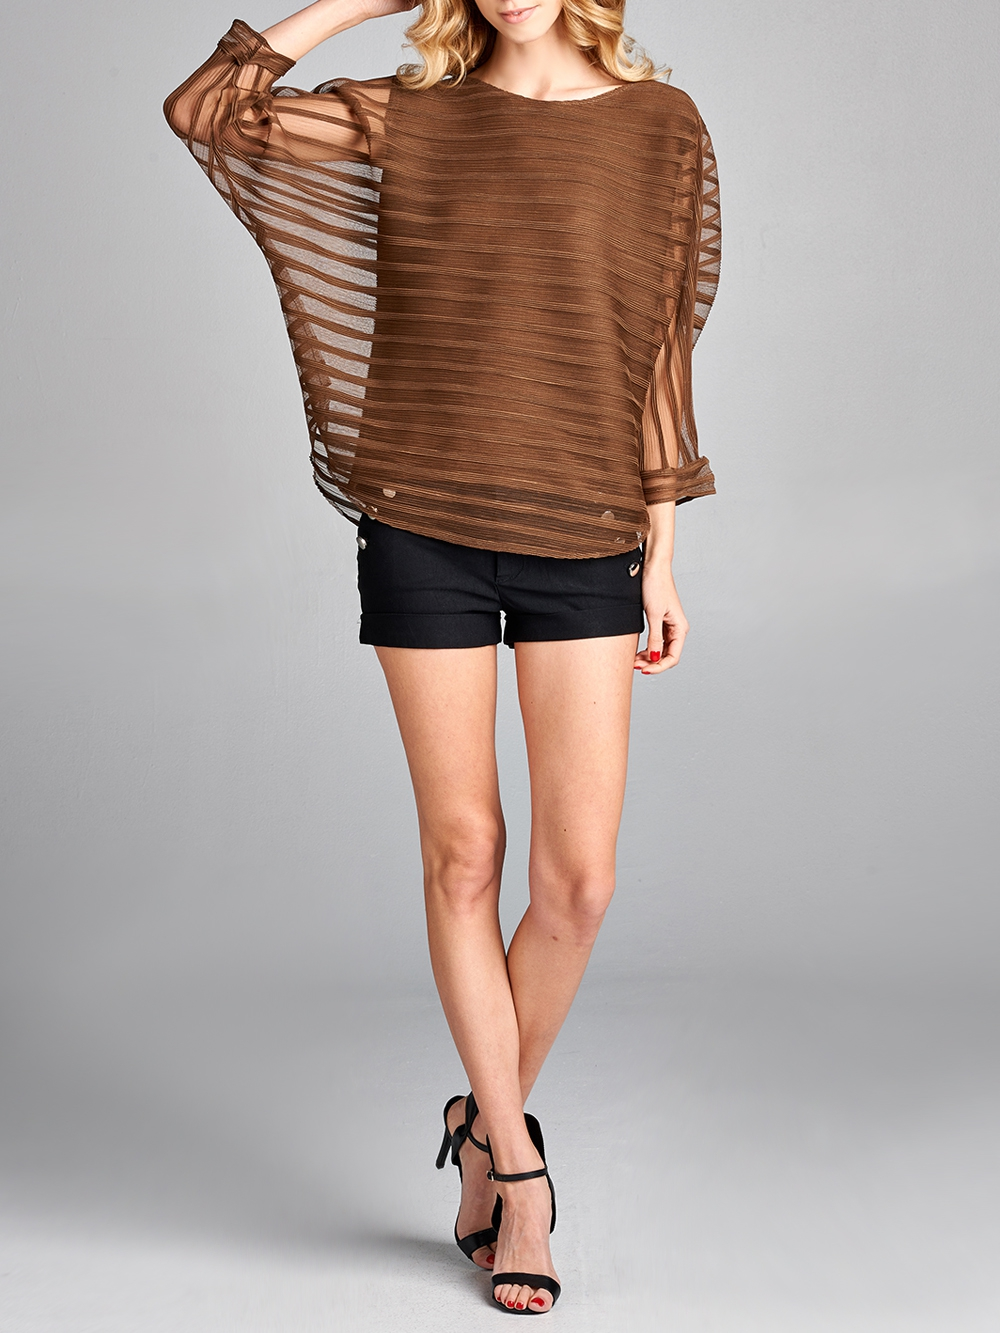 Pleated Brown Kesi  Layered Top - orangeshine.com